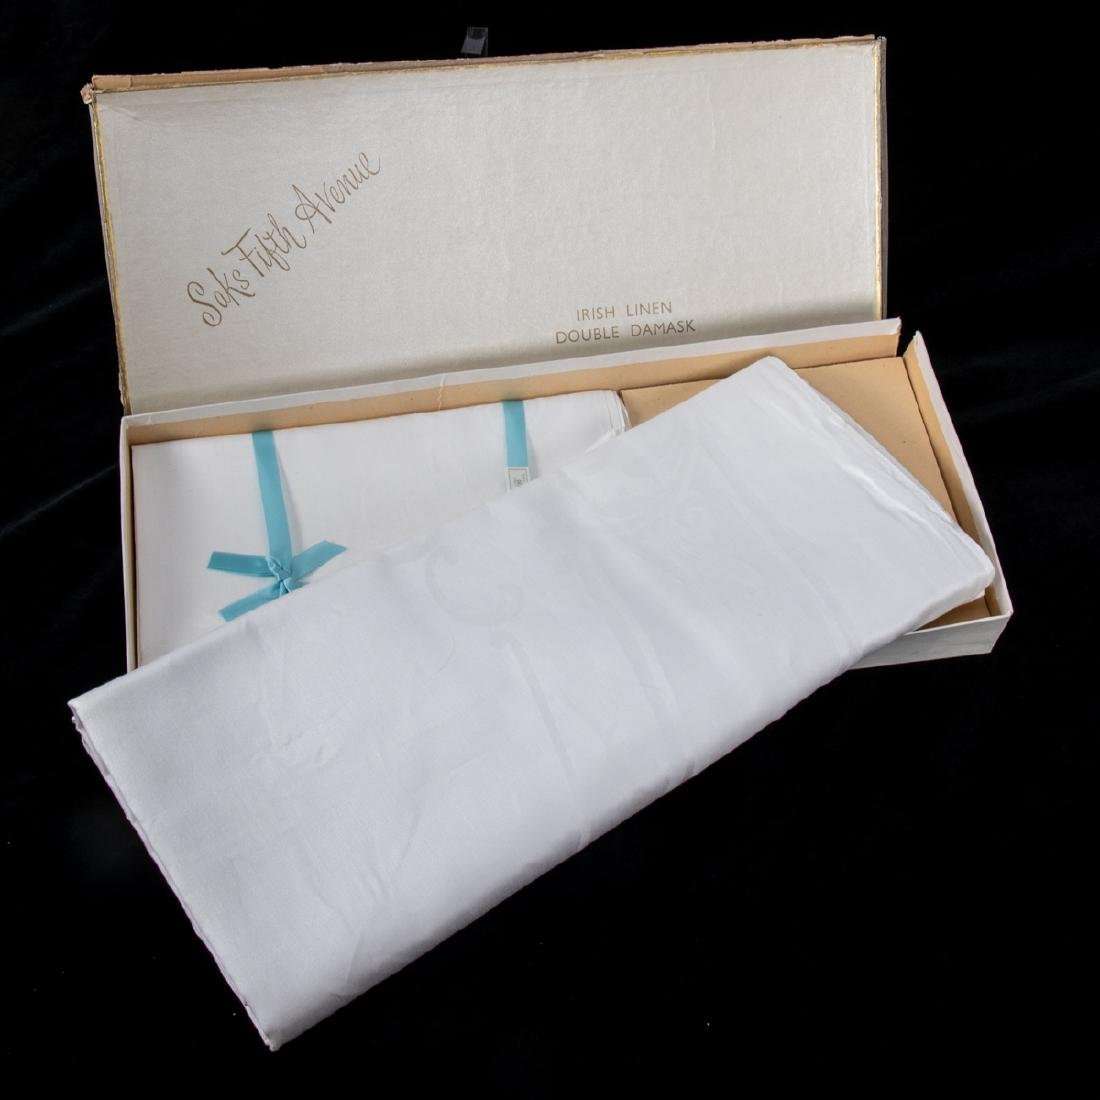 A Set of Irish Linen Double Damask Oval Table Cloth - 2